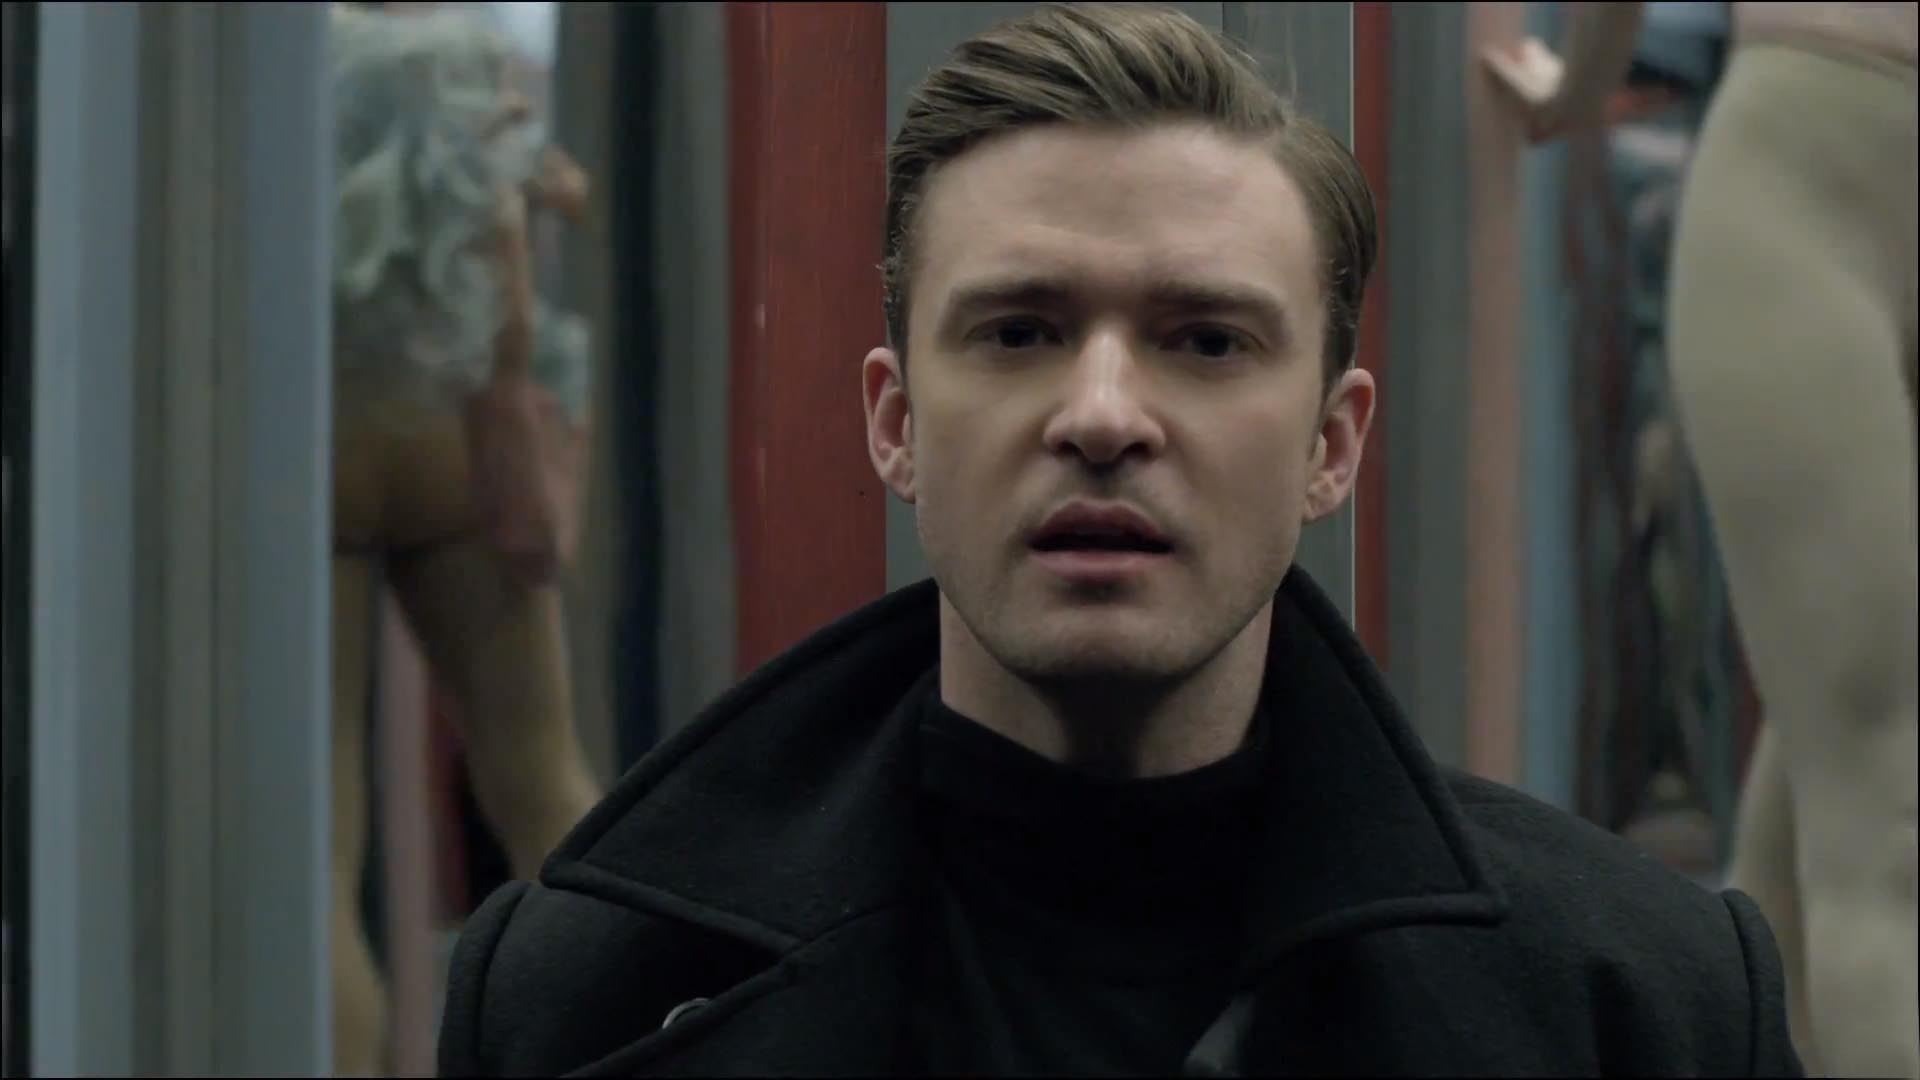 Justin Timberlake dedicated the video to his grandparents Sadie and William Bomar (Picture: RCA Records)